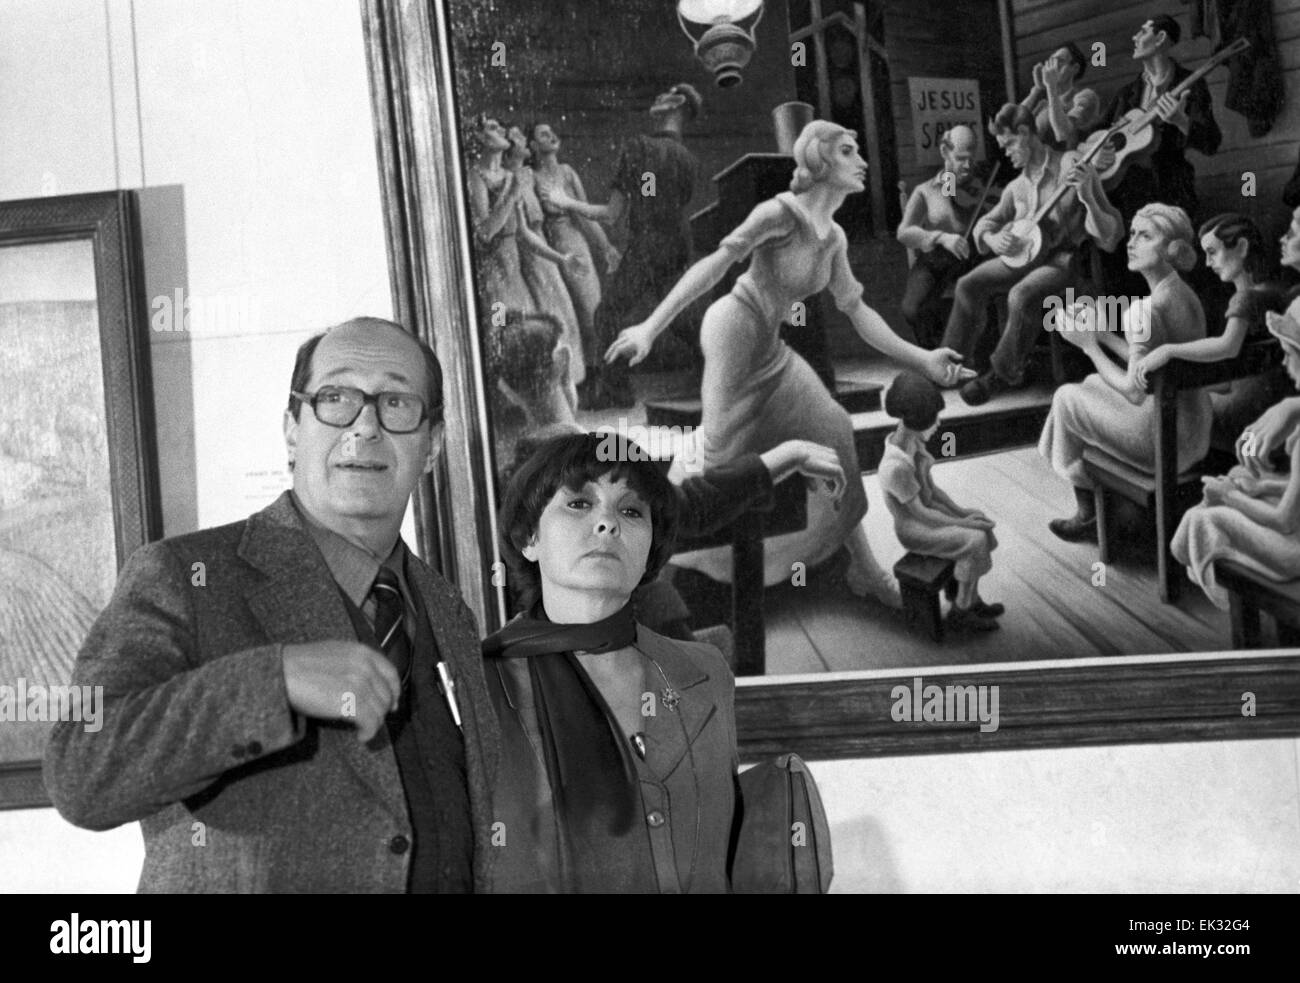 Moscow. USSR. Poet Bella Akhmadulina and People's Artist of the RSFSR Orest Vereisky at the exhibition of American - Stock Image